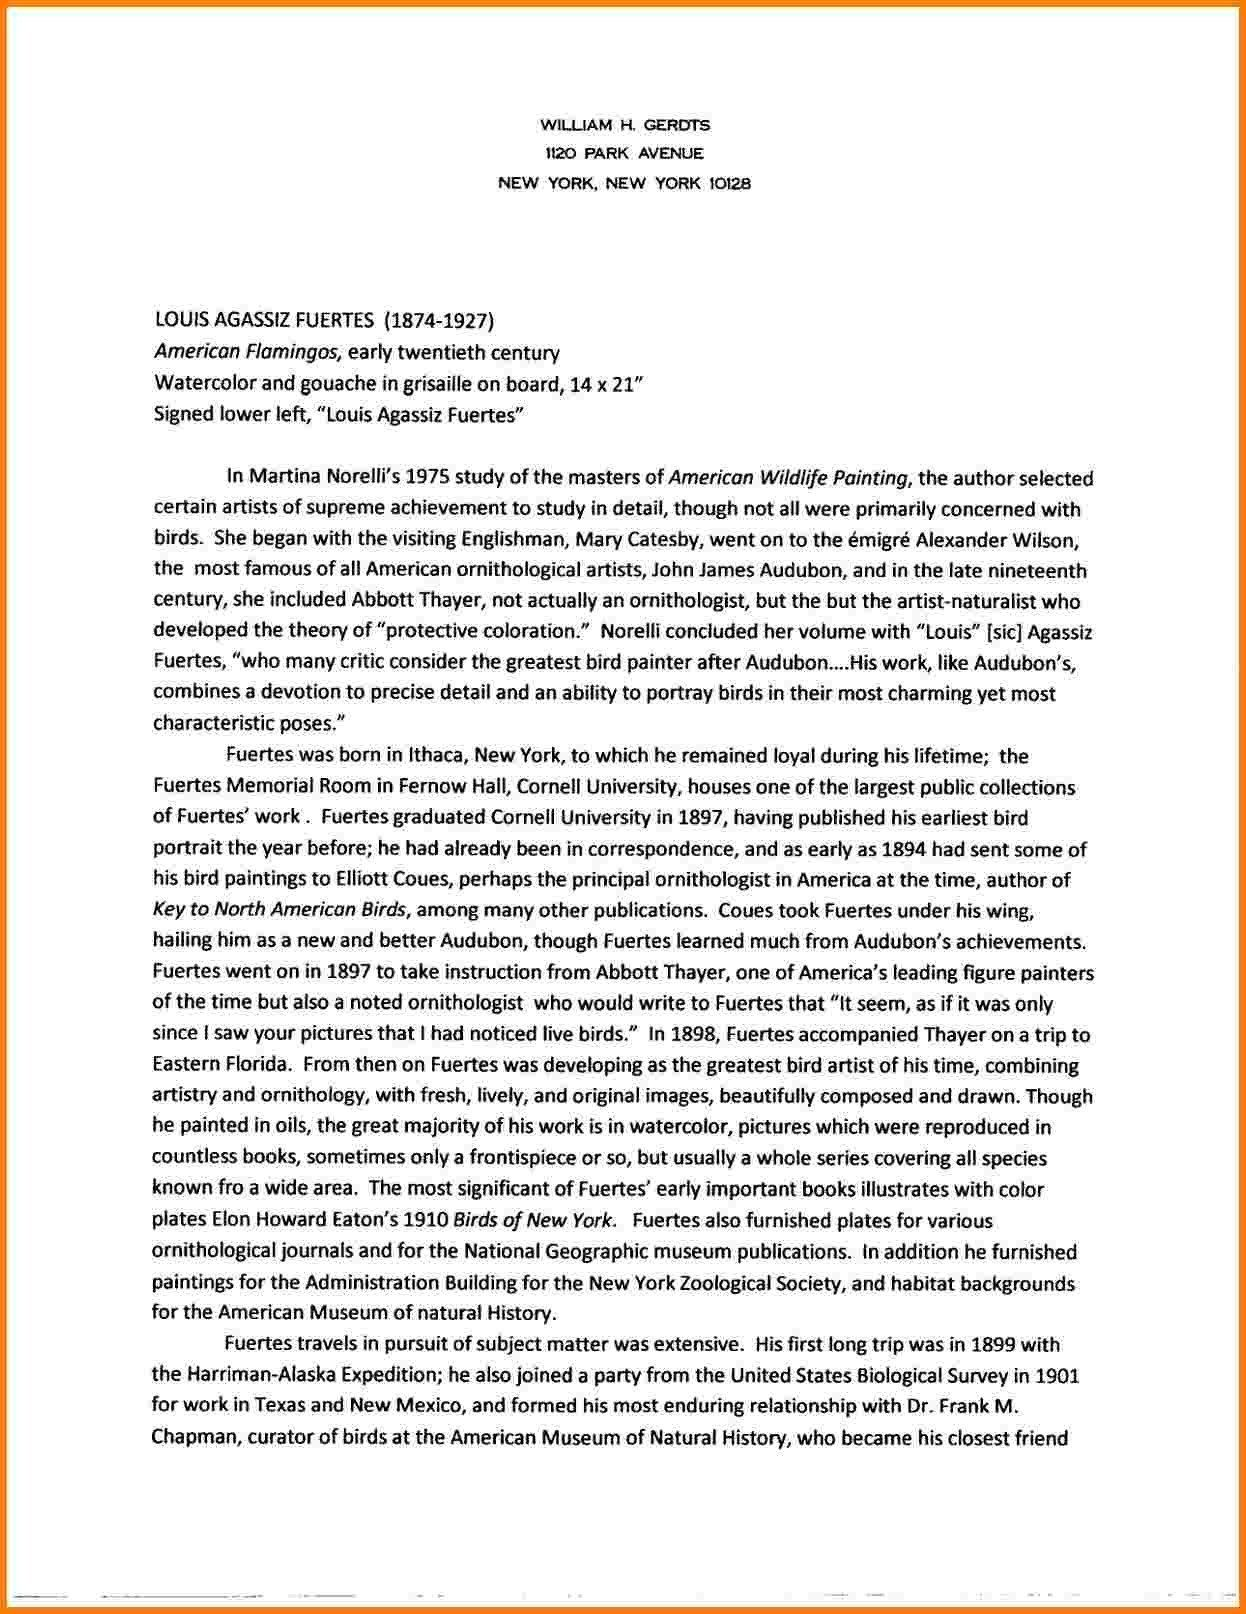 Full Size of College Application Essay Goals